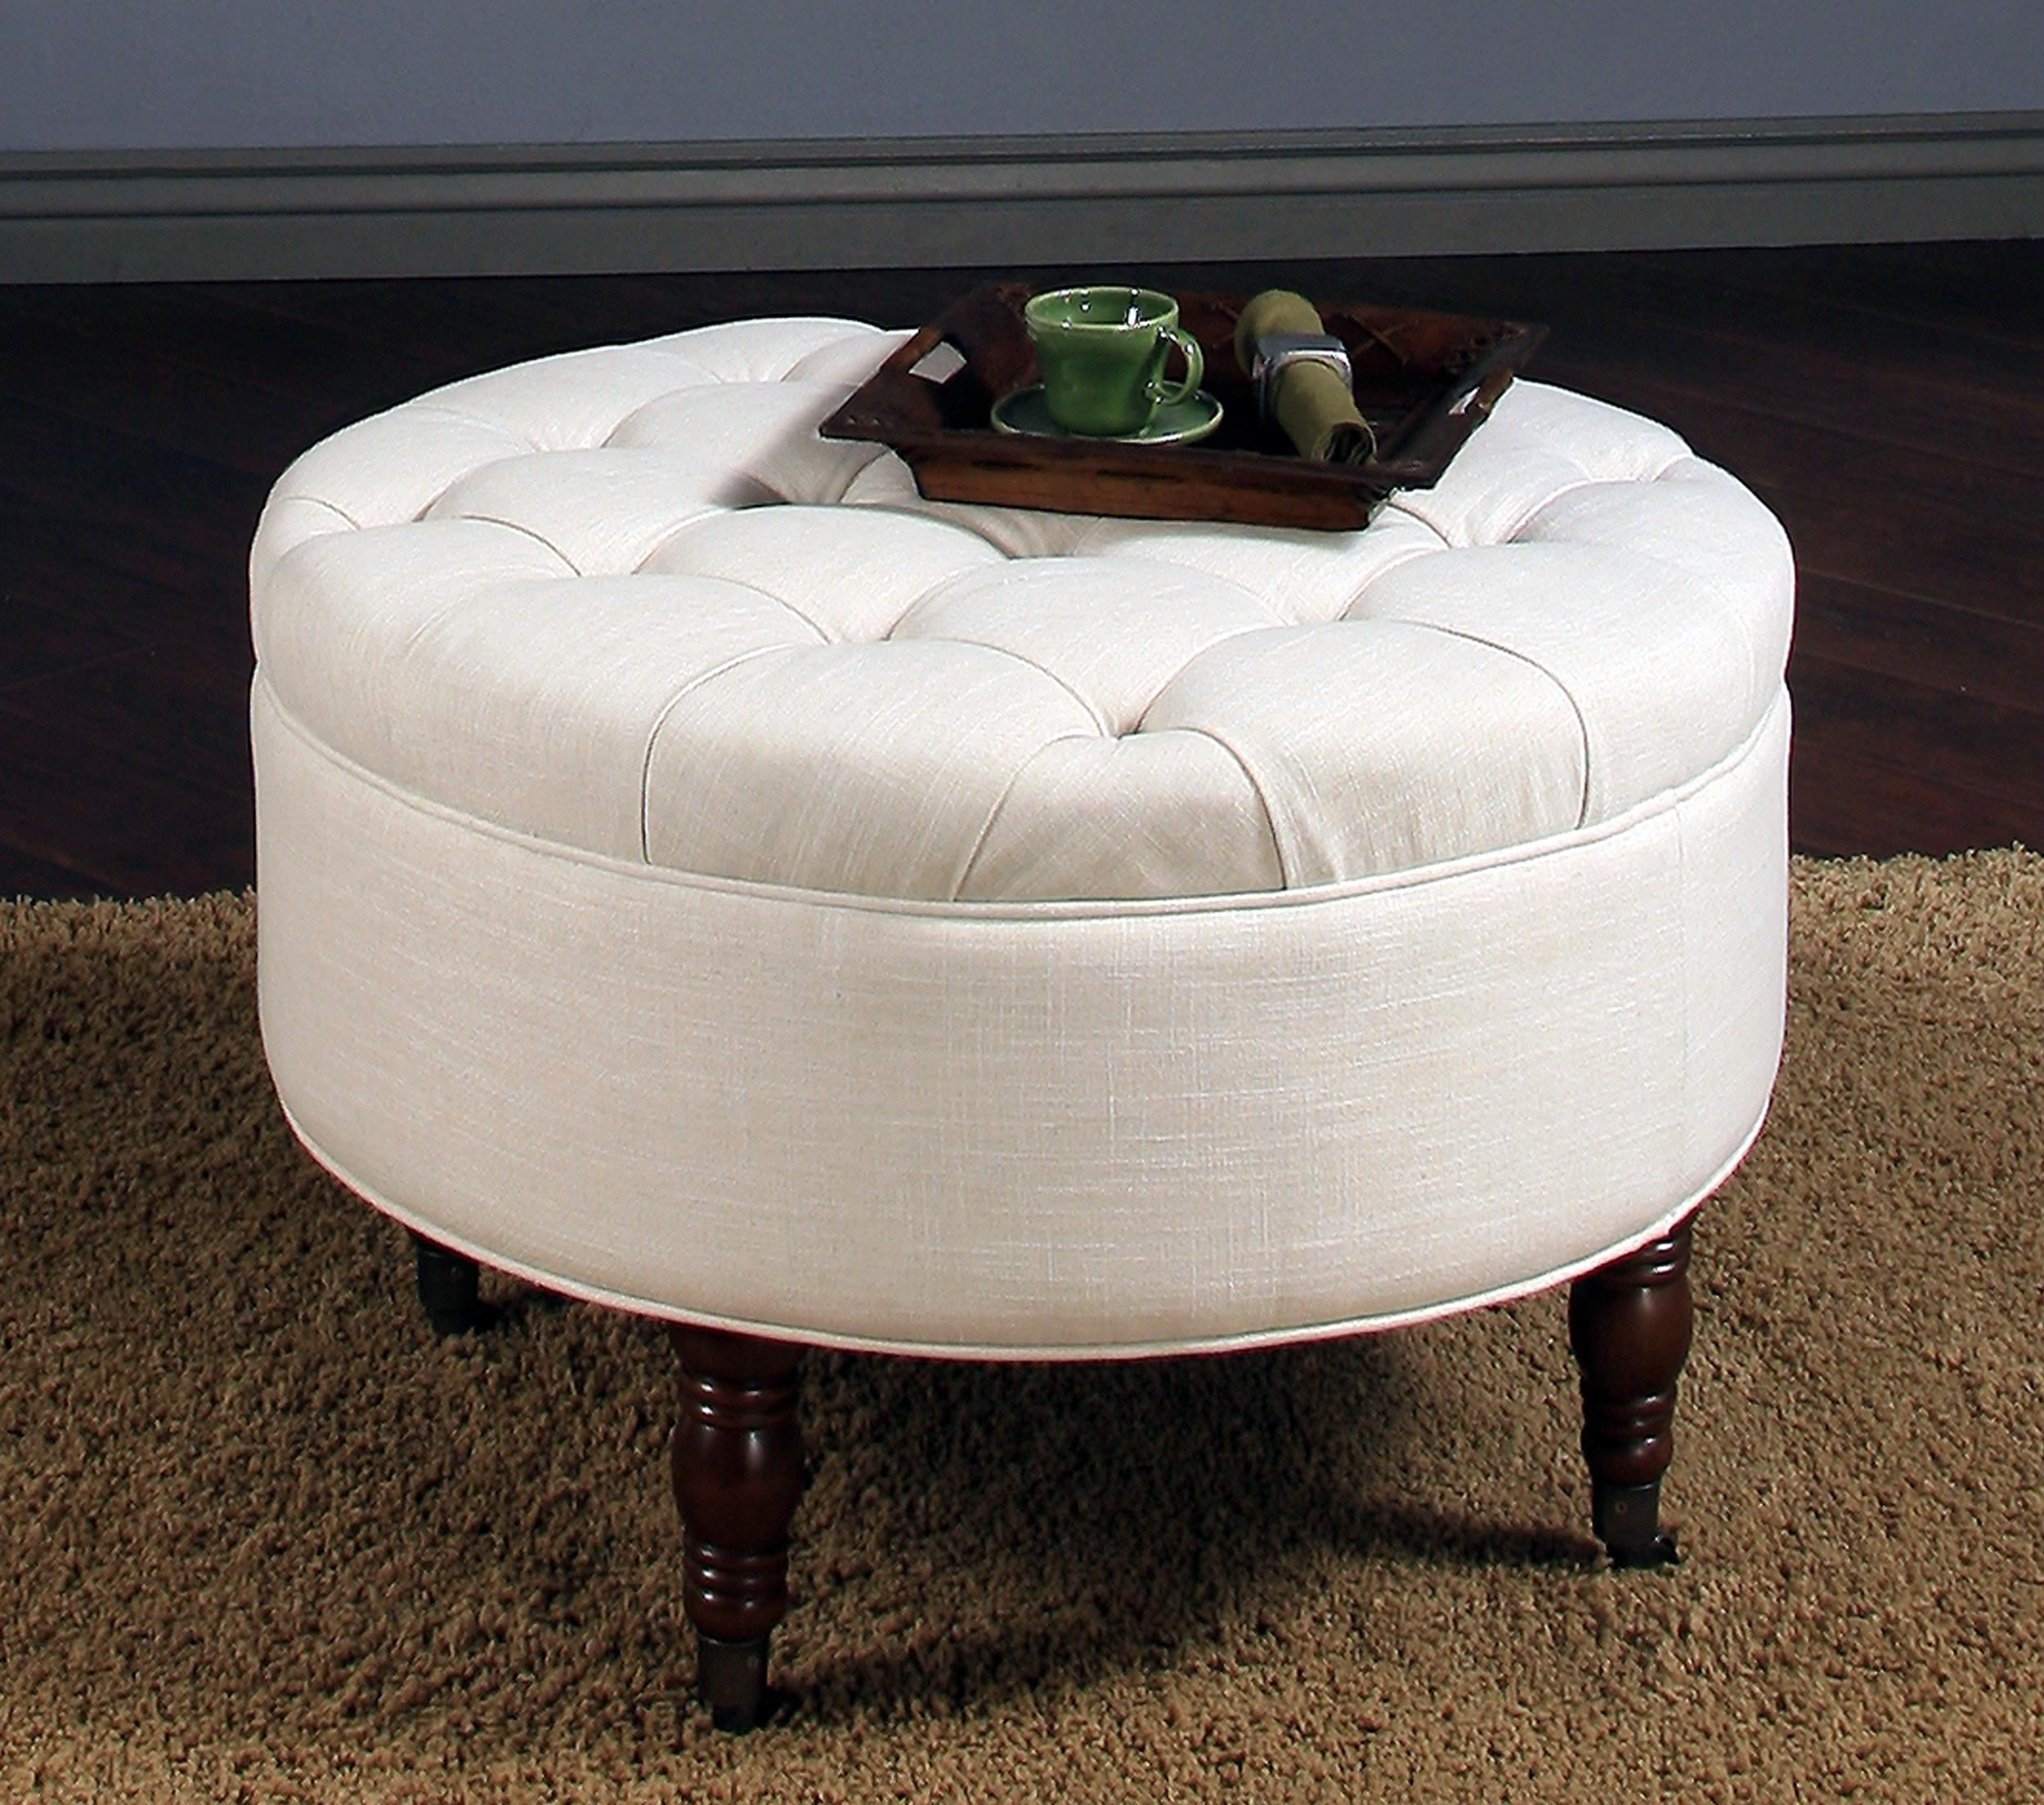 Coffee Table: Round Tufted Storage Ottoman Coffee Table Design How for Button Tufted Coffee Tables (Image 7 of 30)